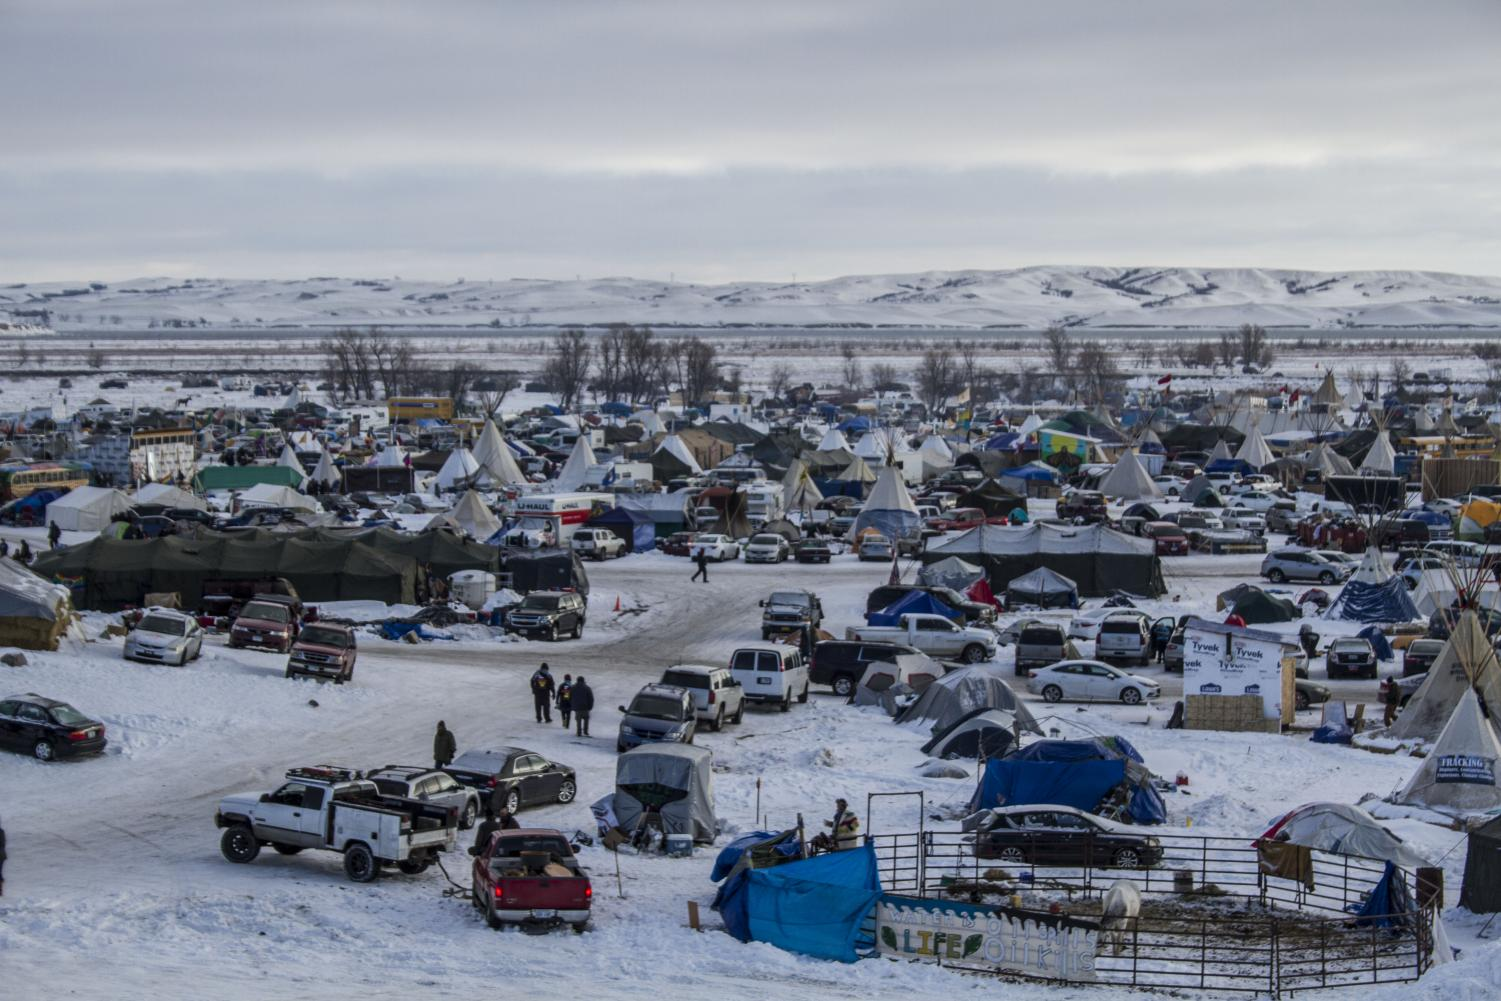 The Standing Rock Reservation camp in December 2016